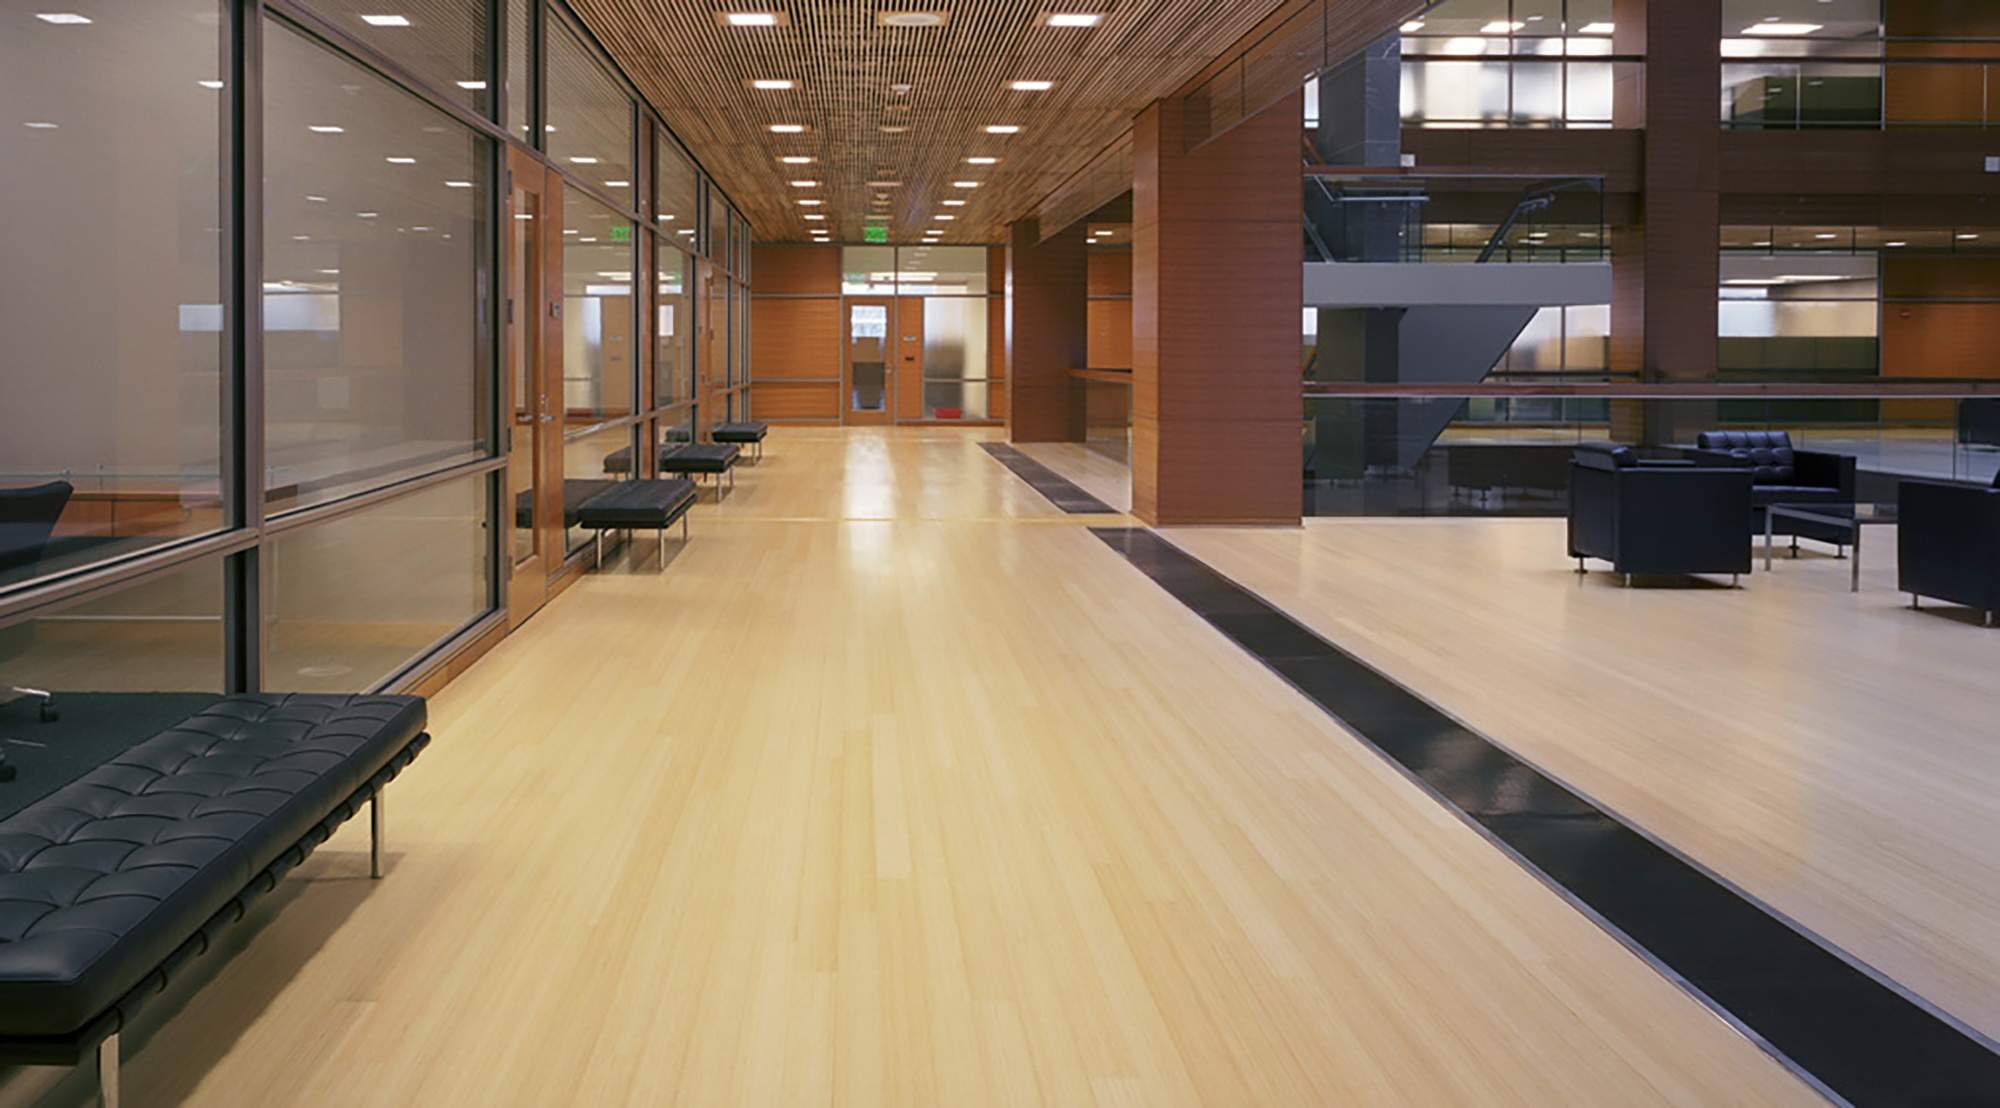 Commercial Bamboo Wood Flooring Etx Surfaces